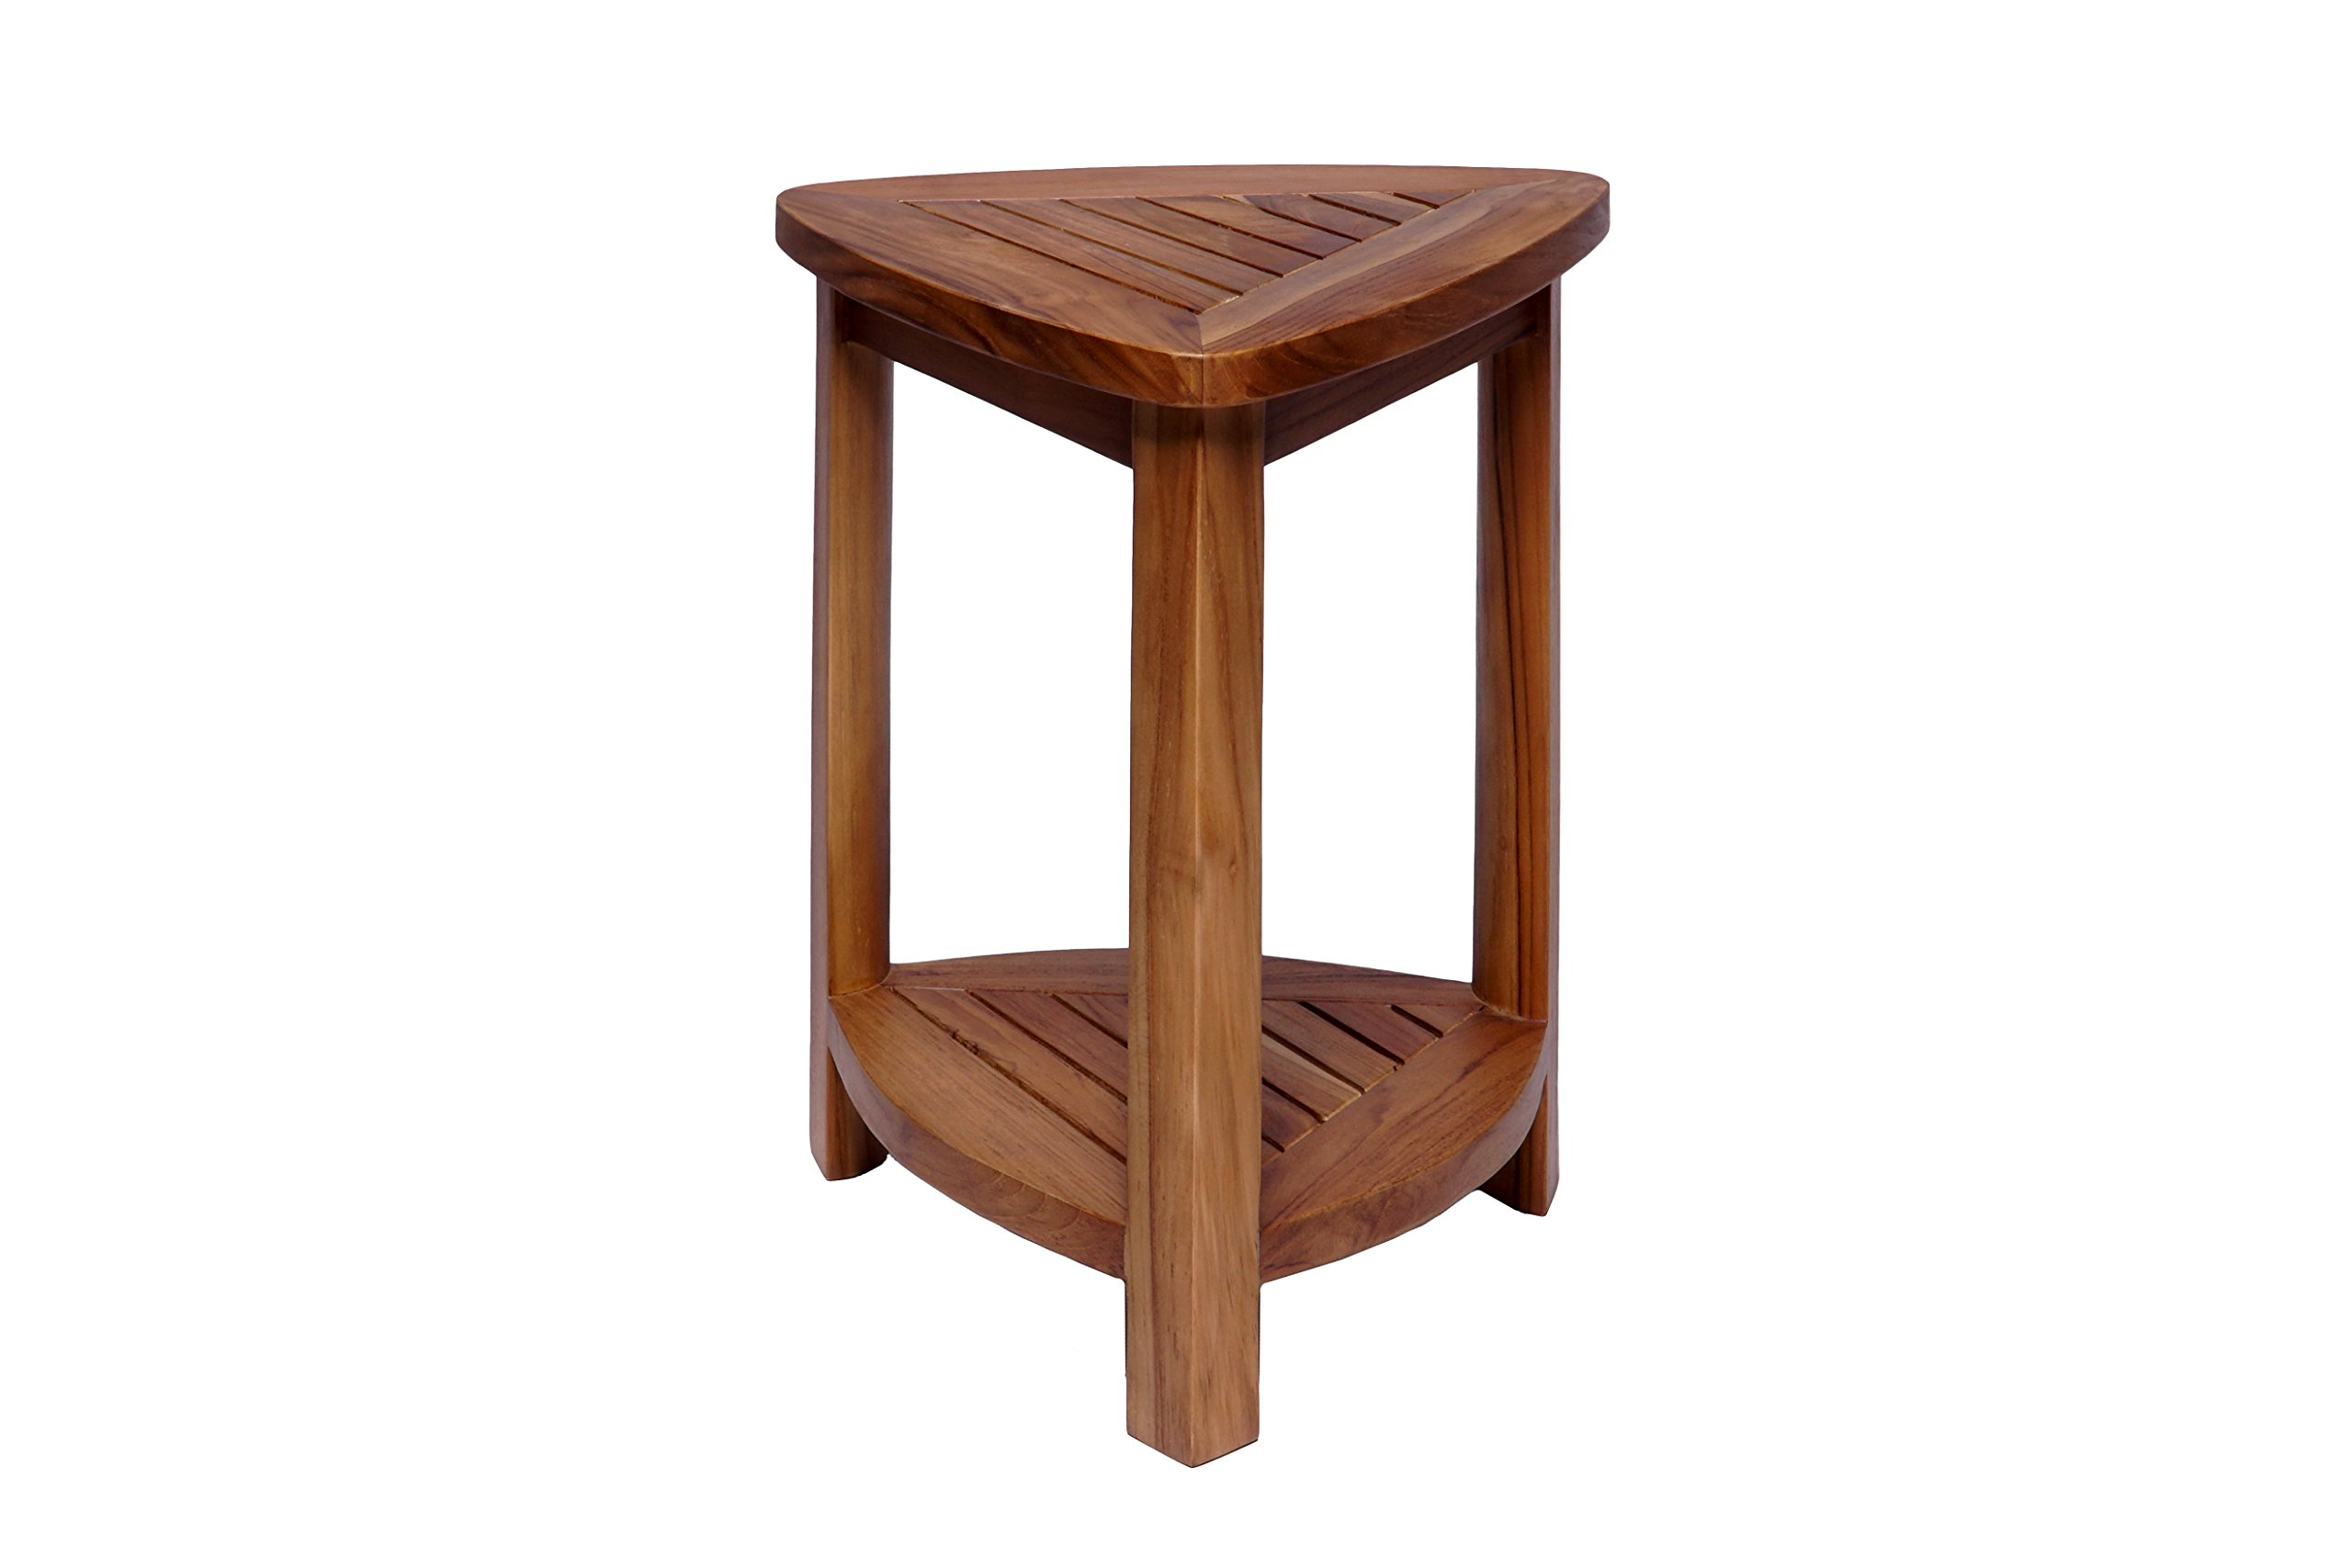 Teak Boutique Teak Wood Corner Table with Shelf, 100% Teak Wood Triangle Table, Natural Water Resistant Wood for Indoor or Outdoor Use, 2 Tier Shelf for Shower,